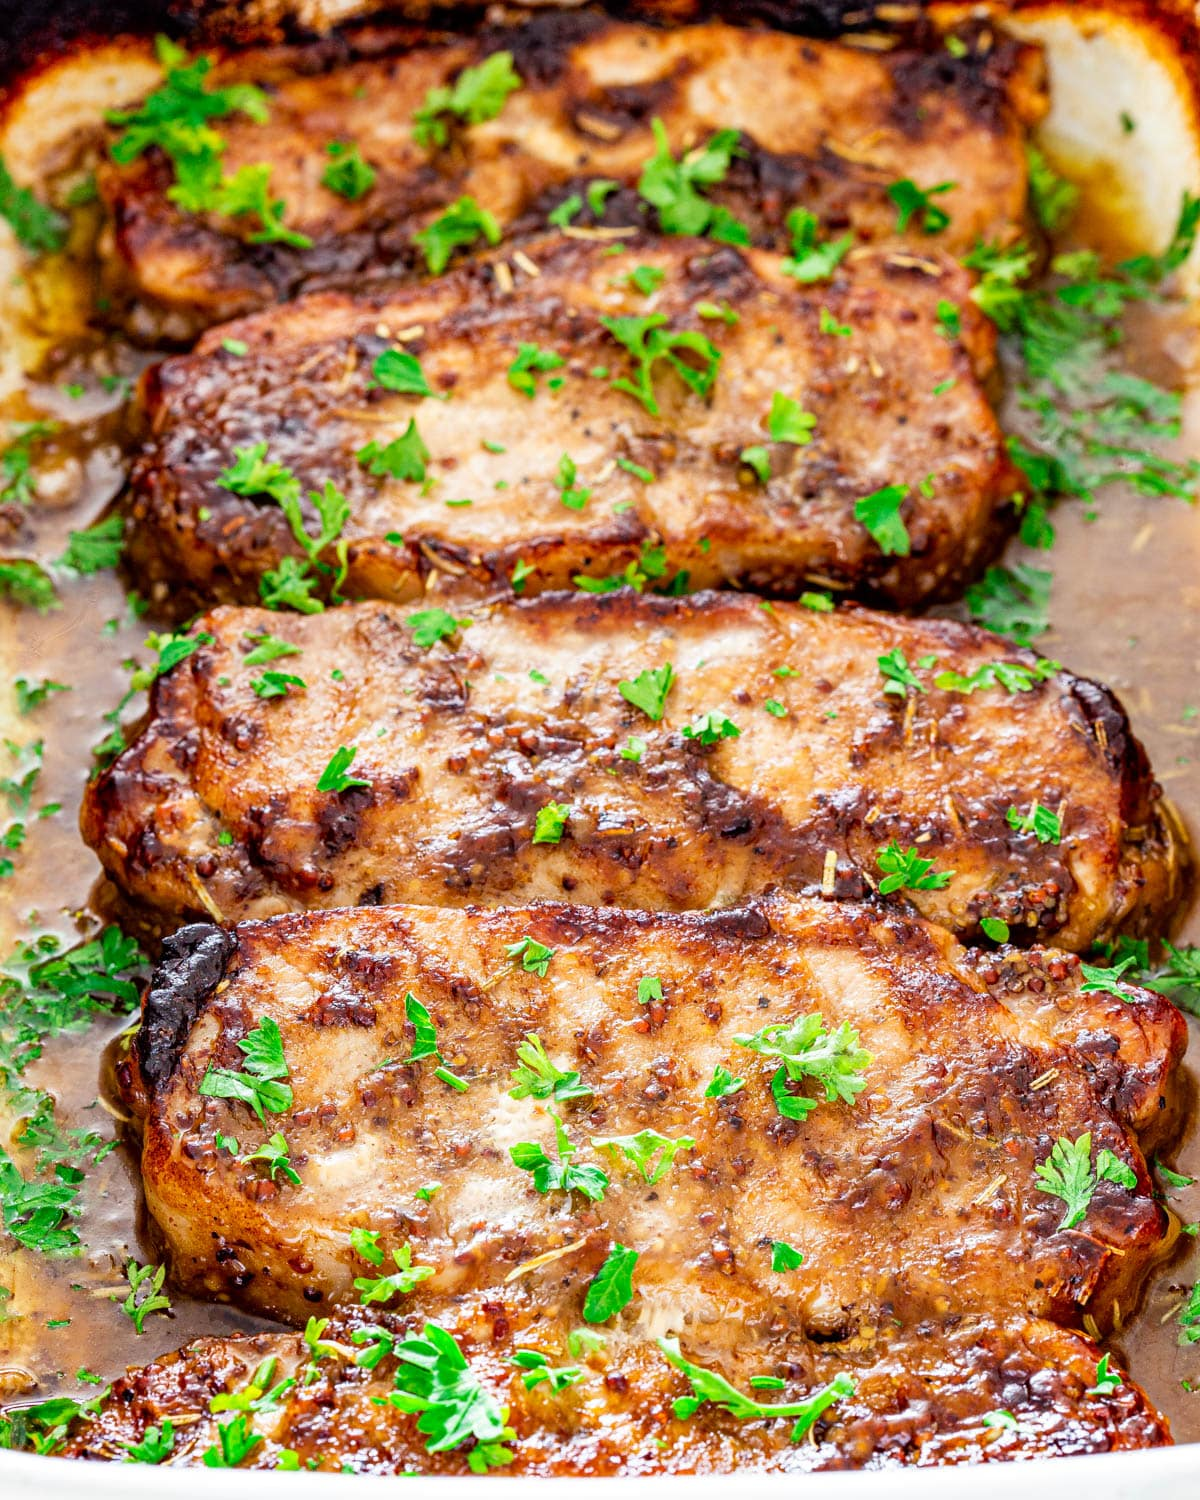 mustard balsamic pork chops in a baking dish garnished with parsley